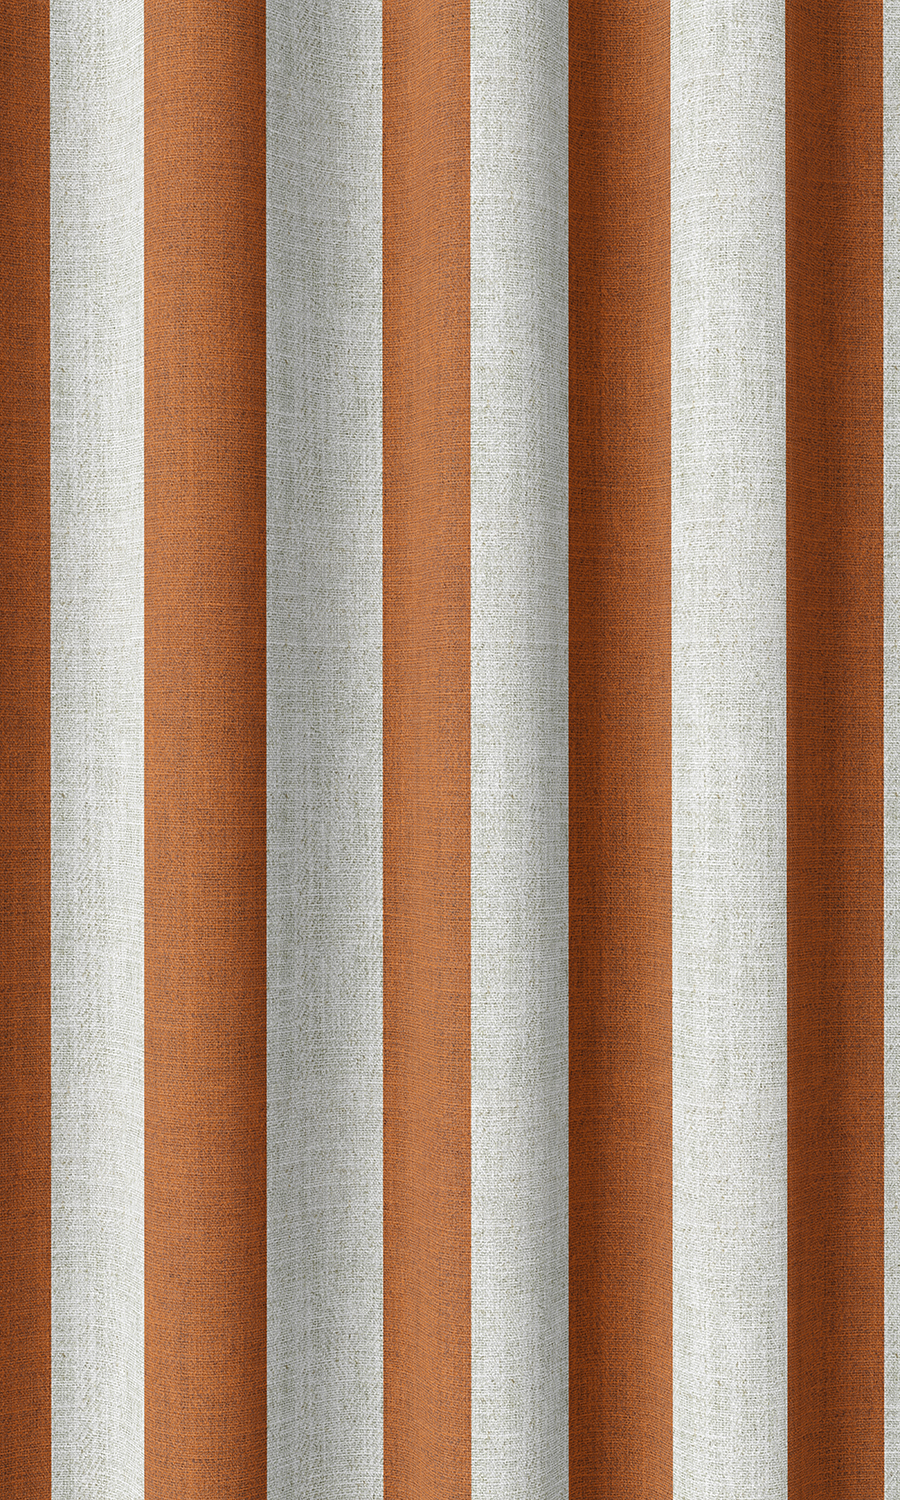 Orange Striped Custom Drapery & Roman Blinds